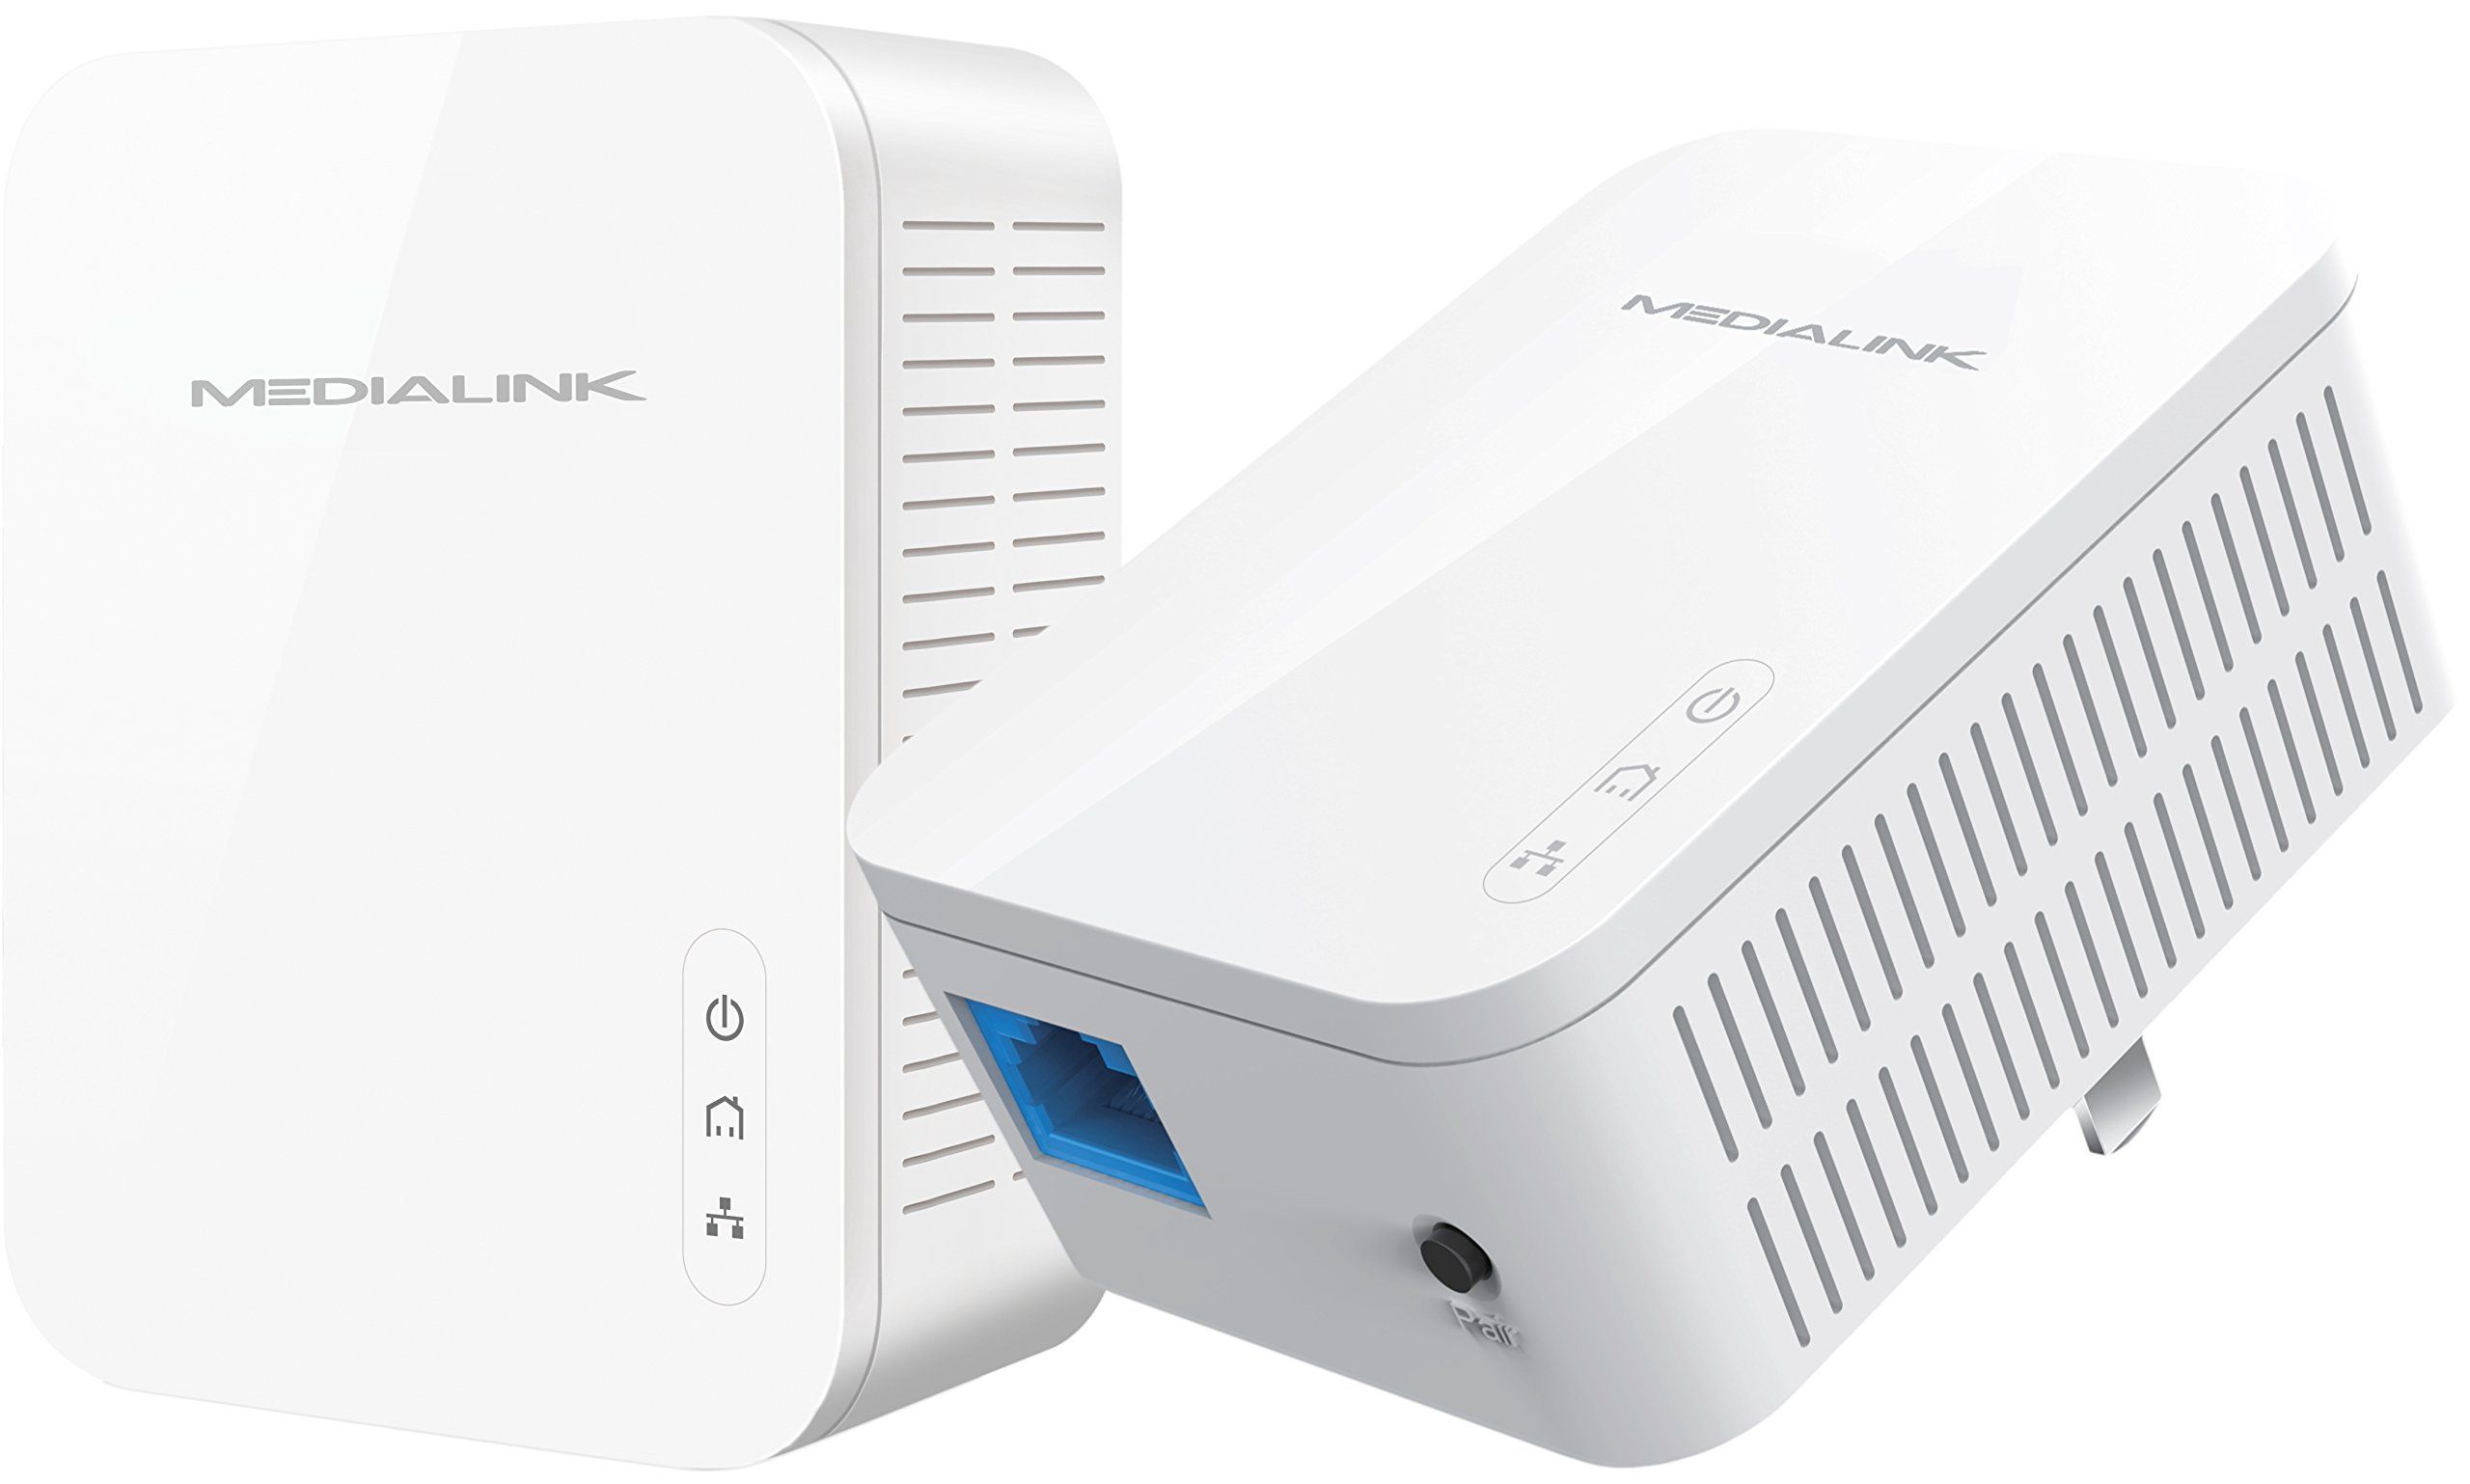 Medialink Gigabit Powerline Adapter Kit (2 Units) - Ethernet Homeplug with Gigabit (1000 Mbps) Wired Speed (Part# MPLA-1000X2)